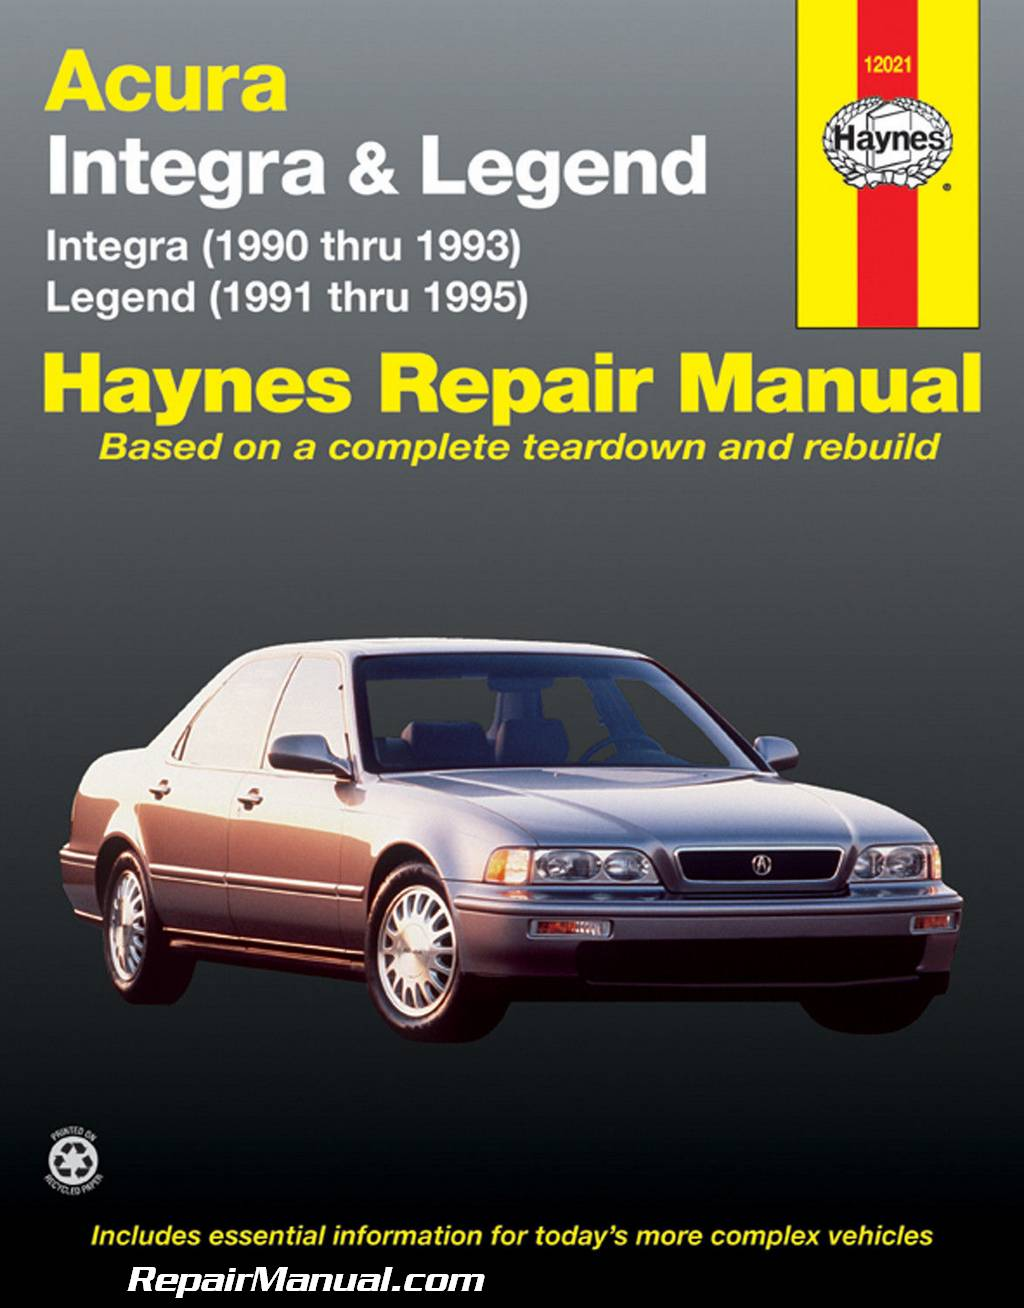 acura legend 1991 1995 haynes automobile repair manual rh repairmanual com haynes car repair manuals haynes car repair manuals